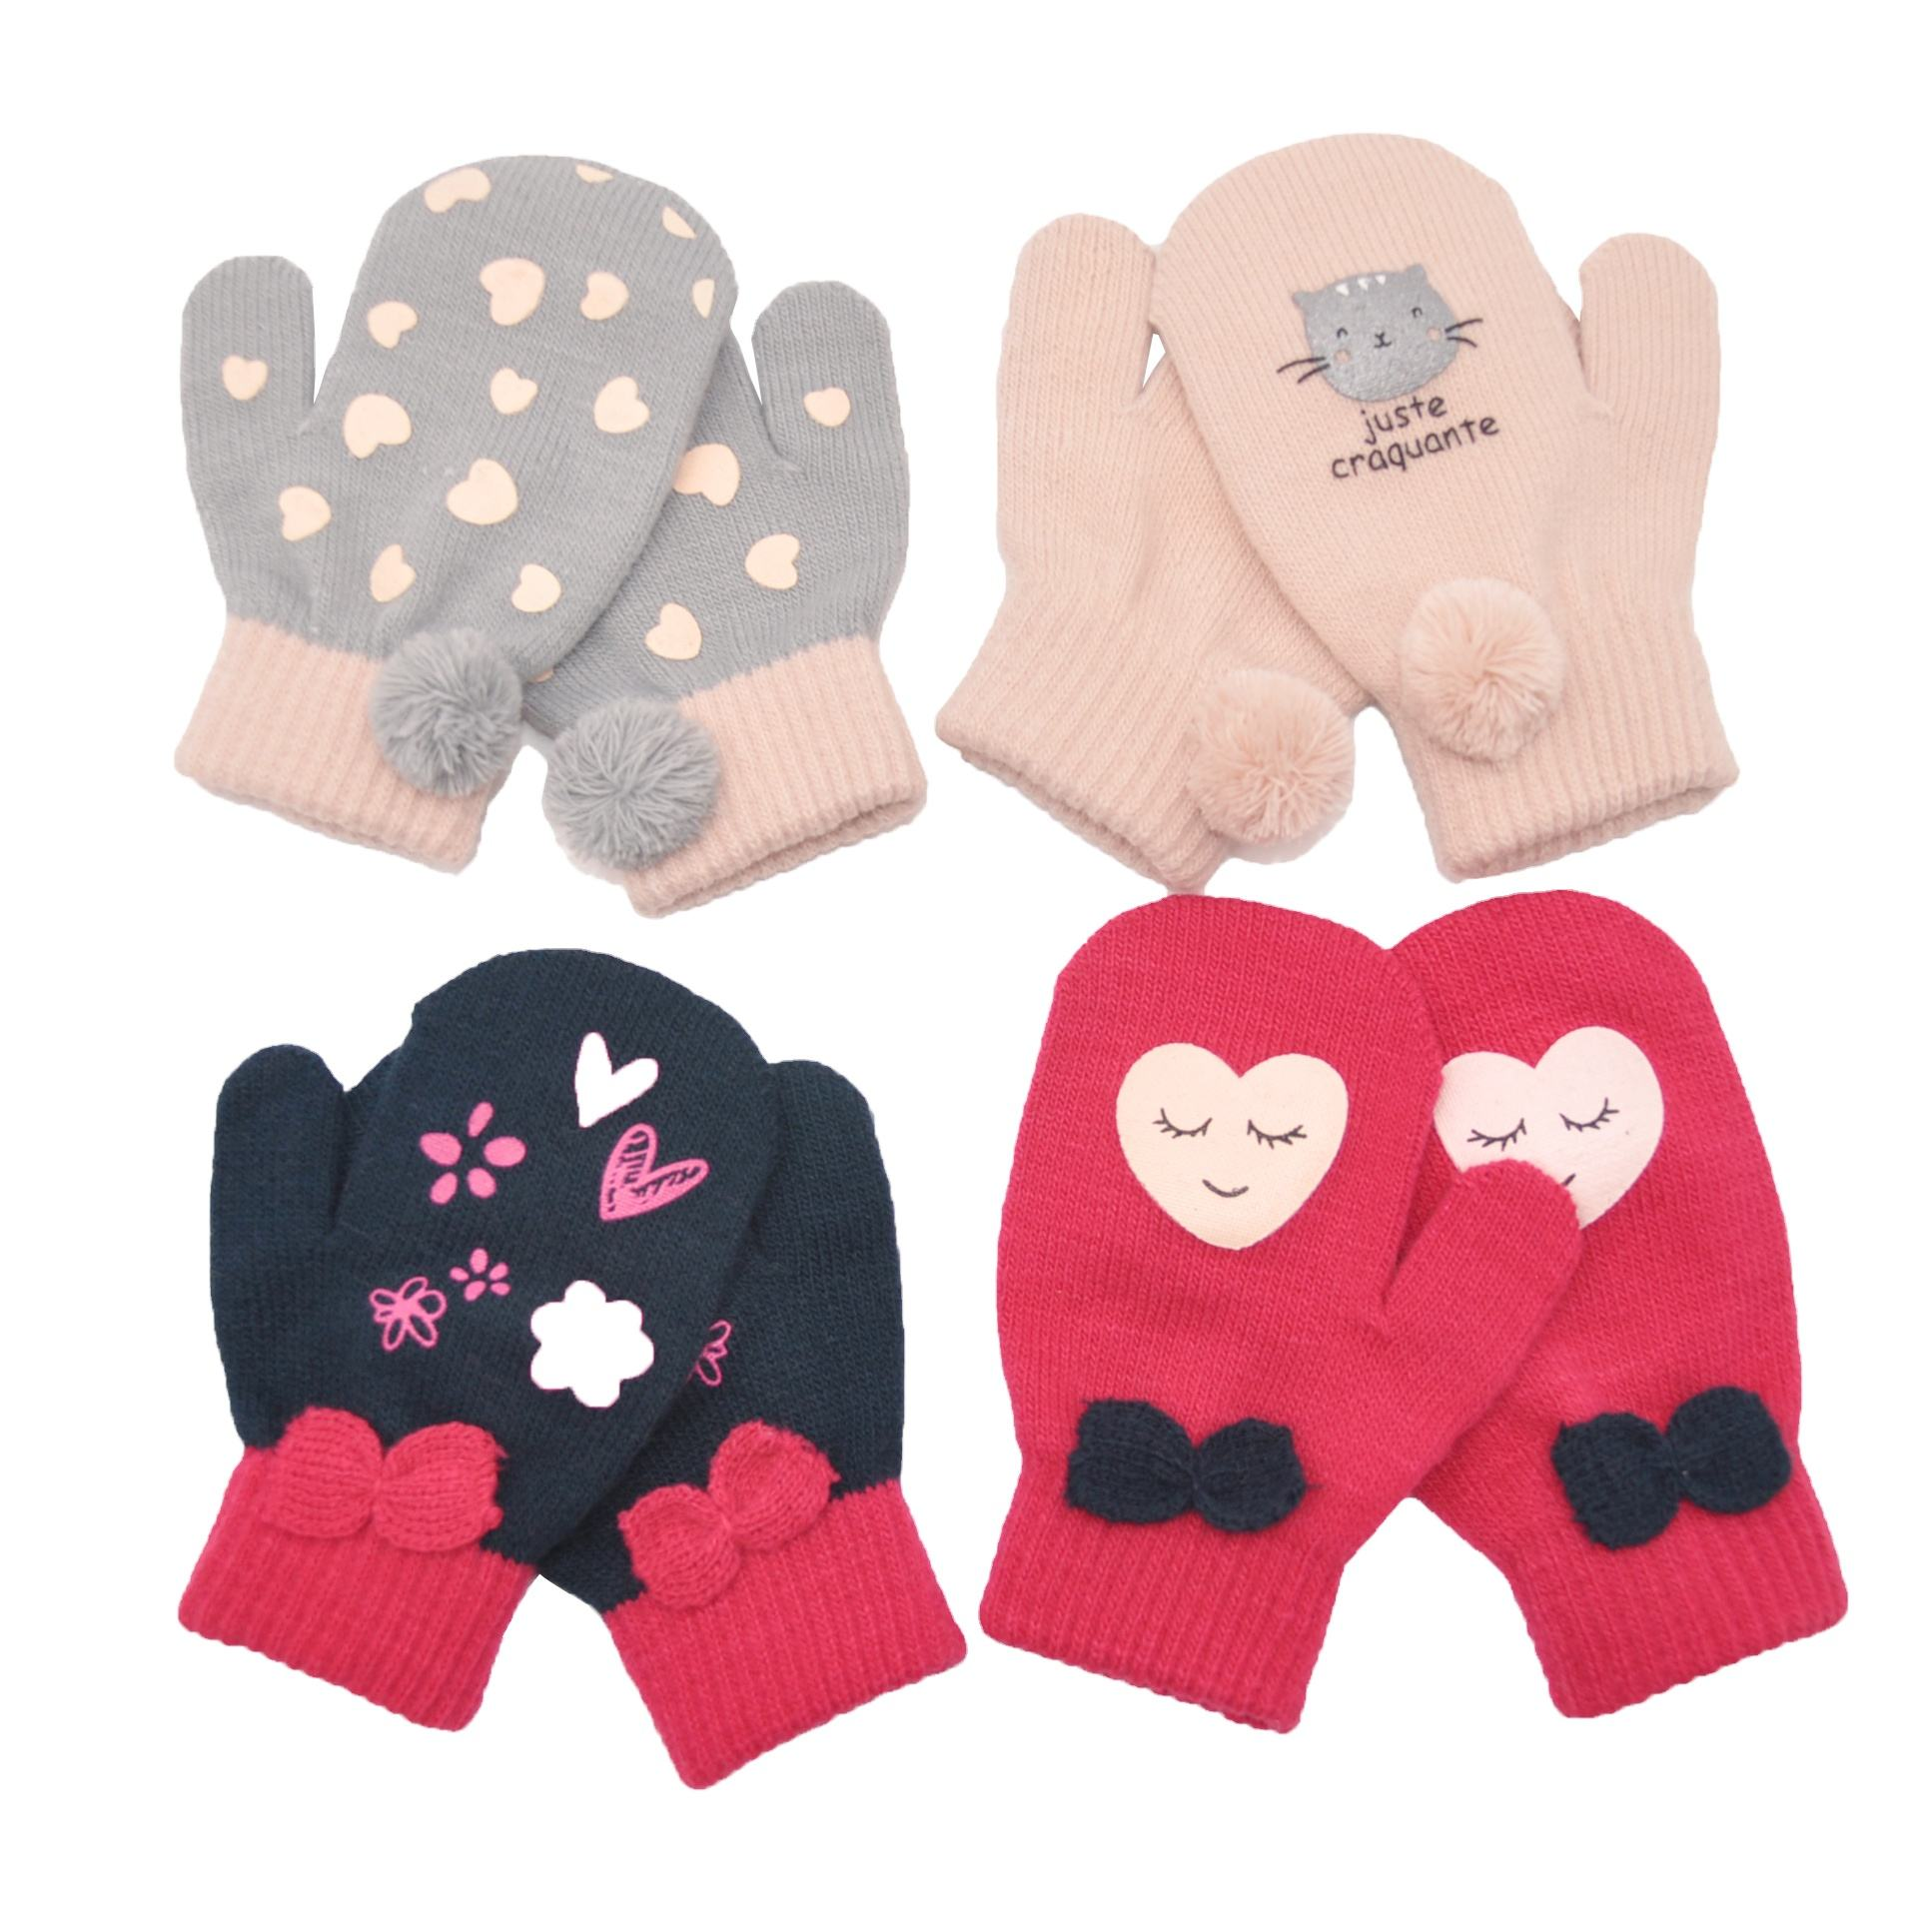 Beautiful Acrylic Wool Polyester Knitted Mittens Children Mittens Baby Mittens Children Gloves